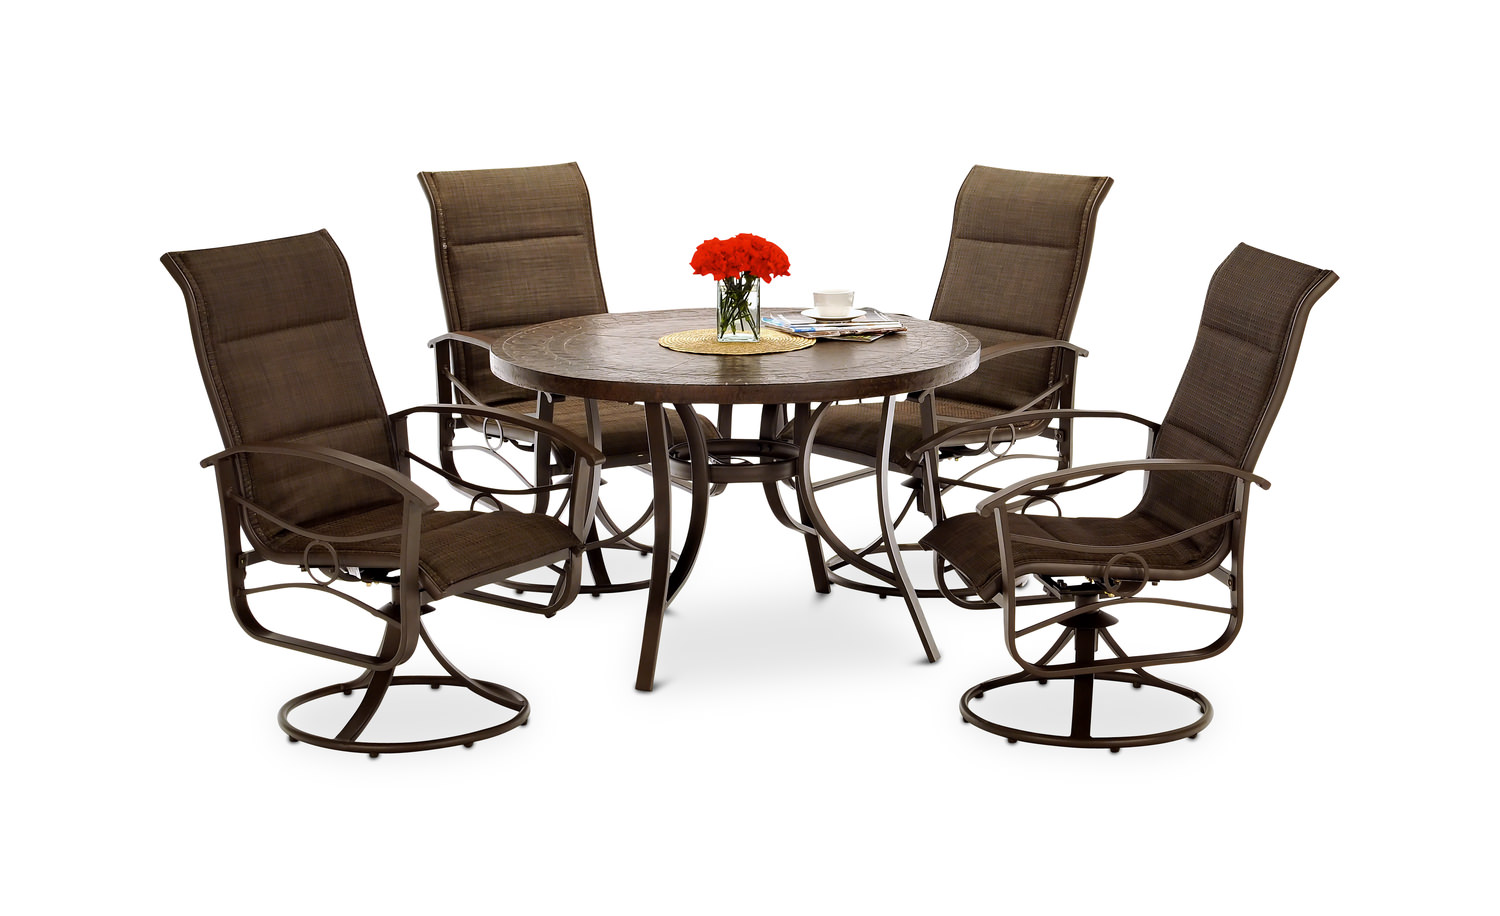 Patio Sets callaway iii 5 piece patio dining set ... IUDYHLN